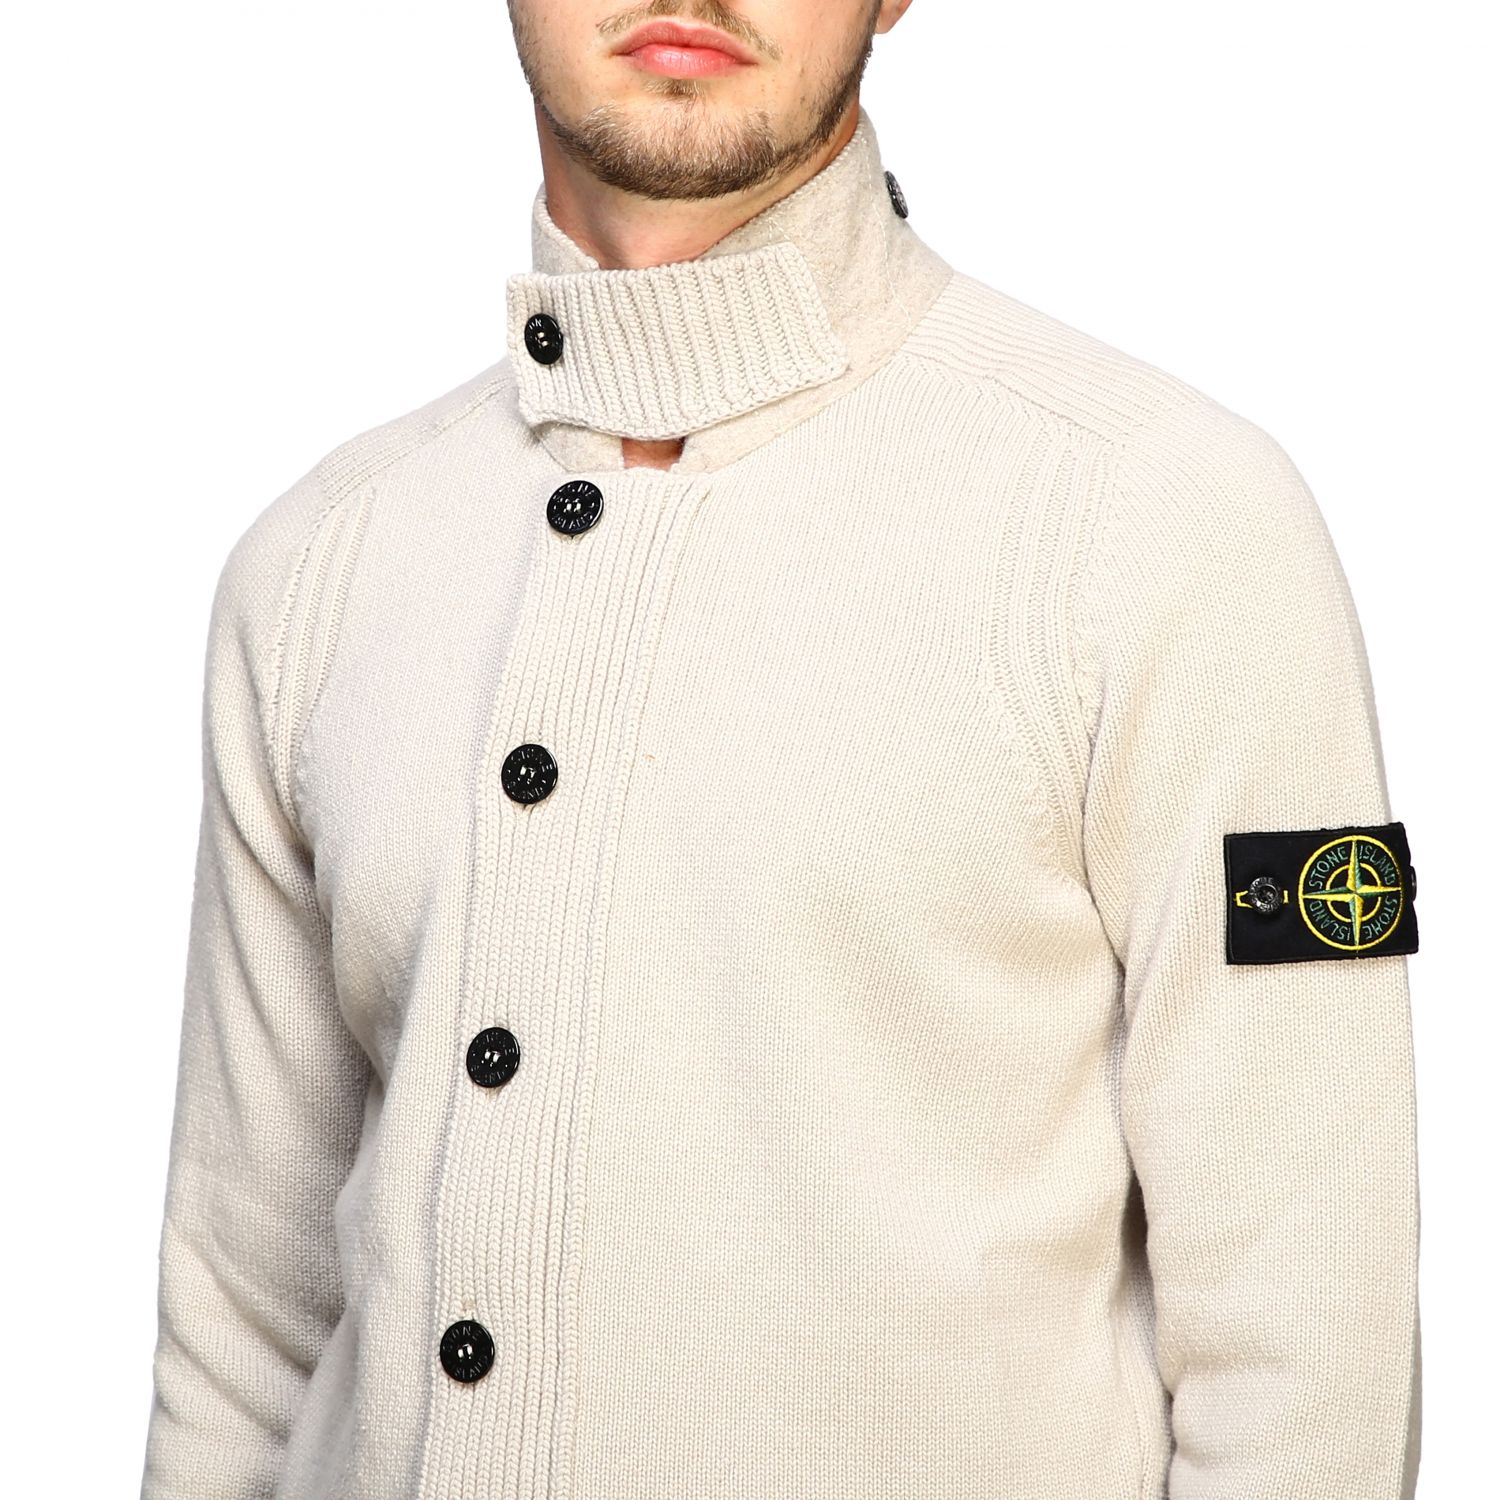 Jersey hombre Stone Island arena 5